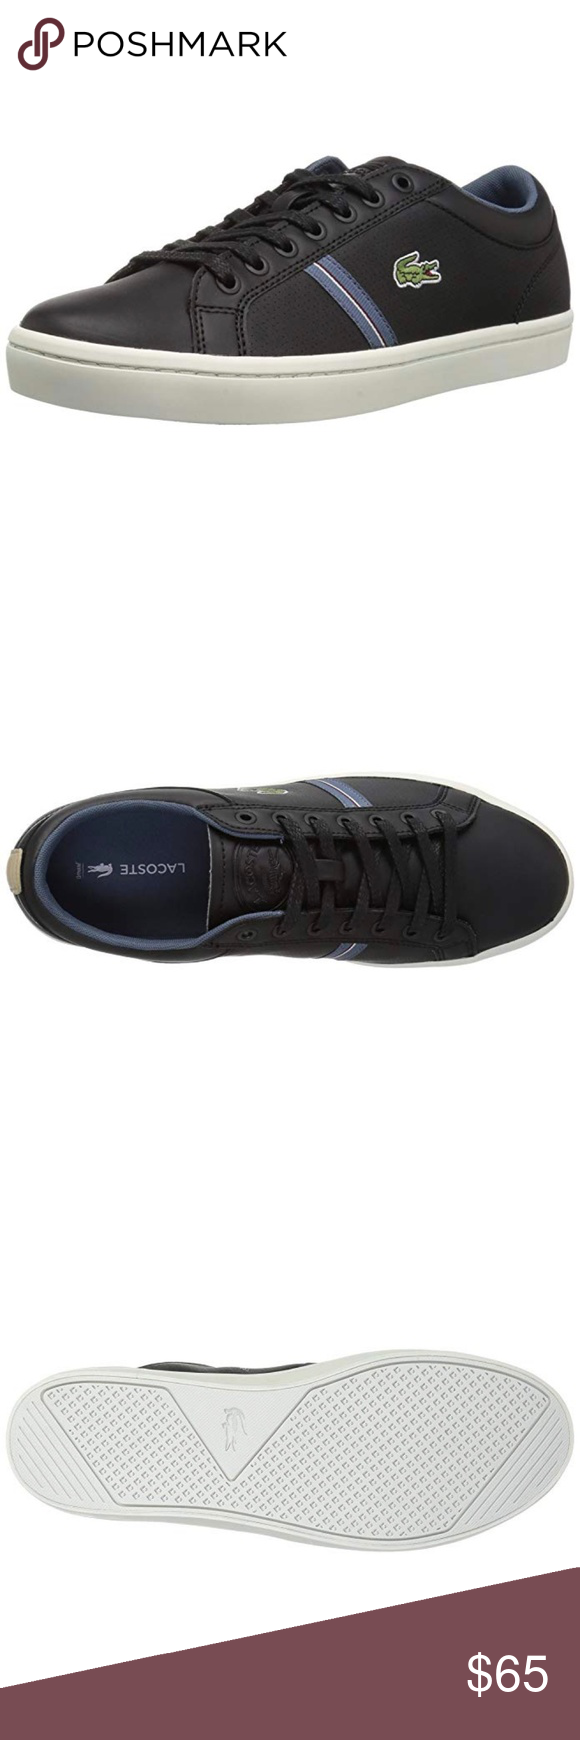 b2fdb3df704395 Lacoste Men s Straightset Fashion Shoes Black New Lacoste Men s Straightset  Fashion Sneakers Shoes Black New in Box Leather upper Lace-up construction  for a ...